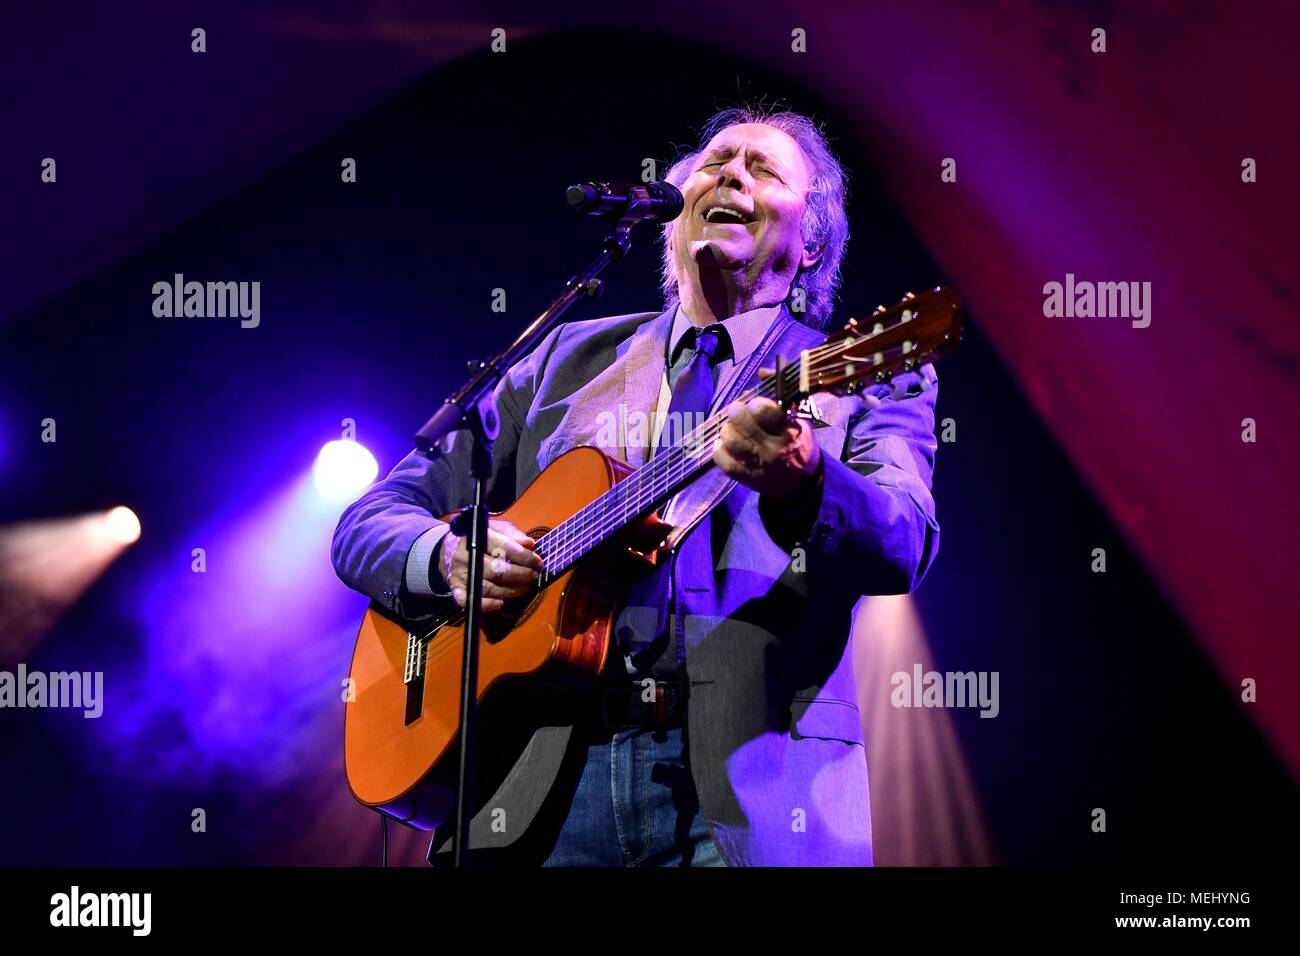 Roquetas de Mar, Almeria. 22nd Apr, 2018. Spanish singer Joan Manuel Serrat performs on stage during his concert of the tour 'Mediterraneo Da Capo' held in Roquetas de Mar, Almeria, 22 April 2018. EFE/Carlos Barba Credit: EFE News Agency/Alamy Live News - Stock Image